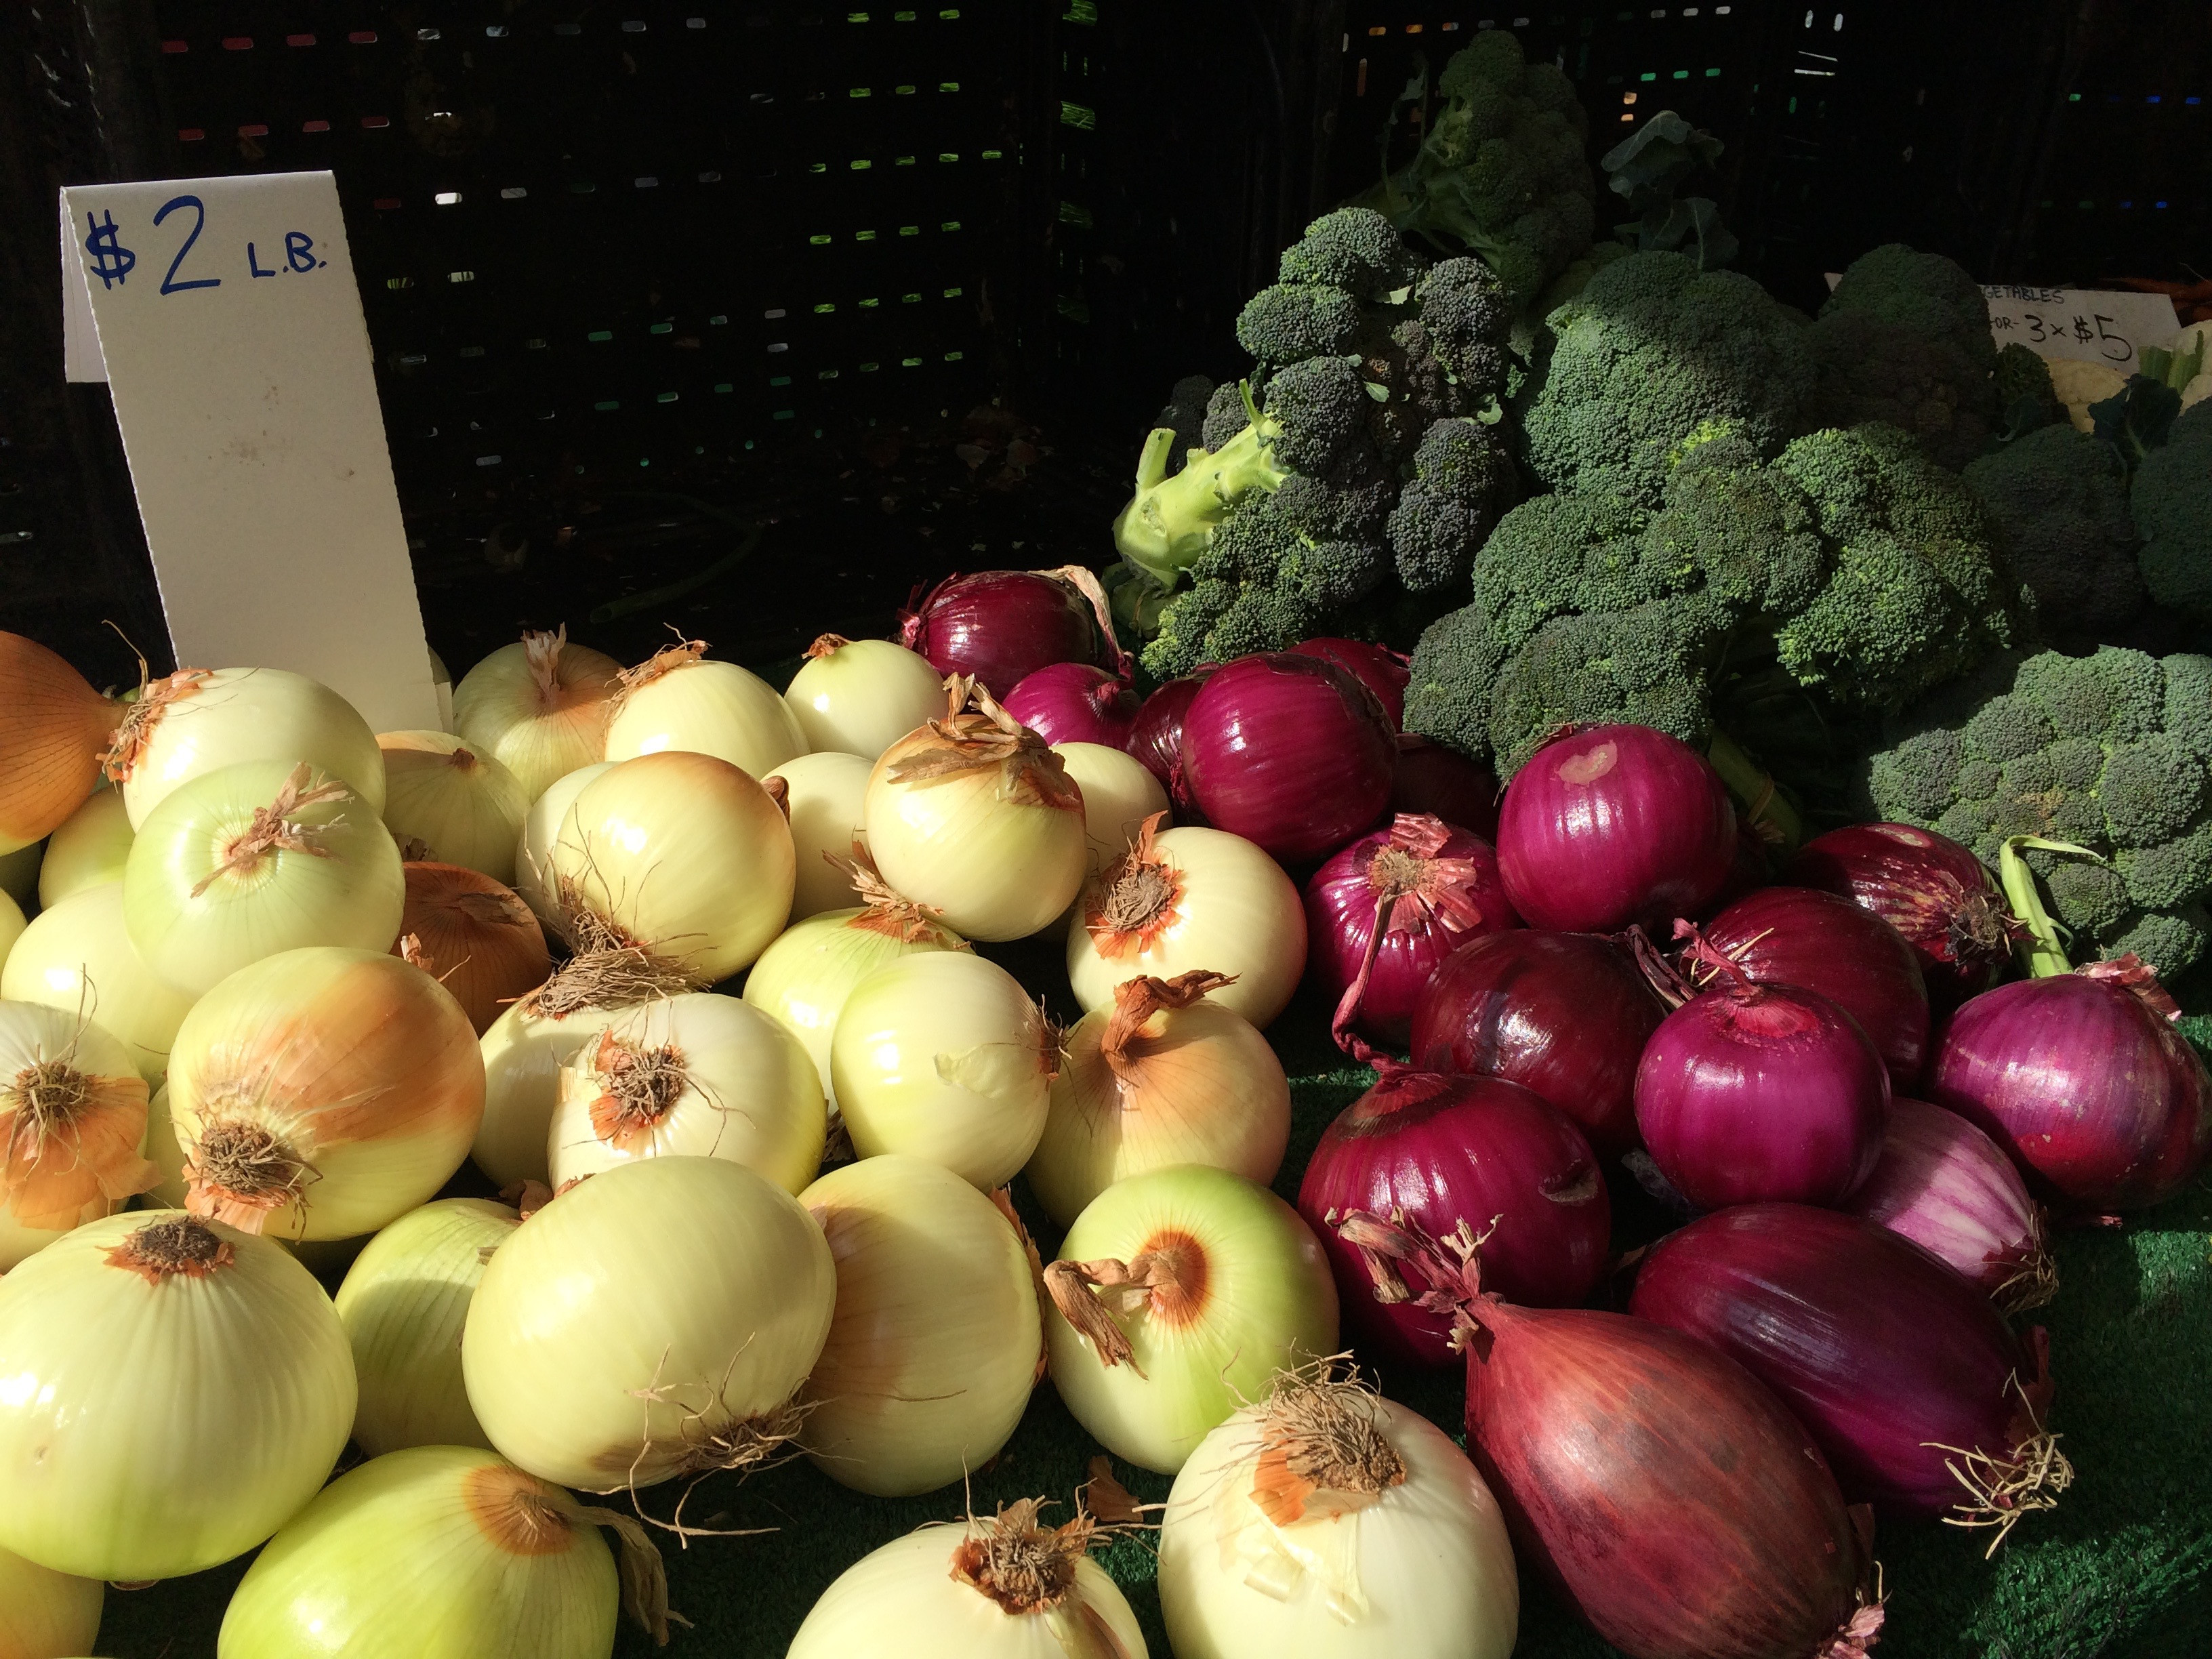 City seeking applicants for Food Policy Council